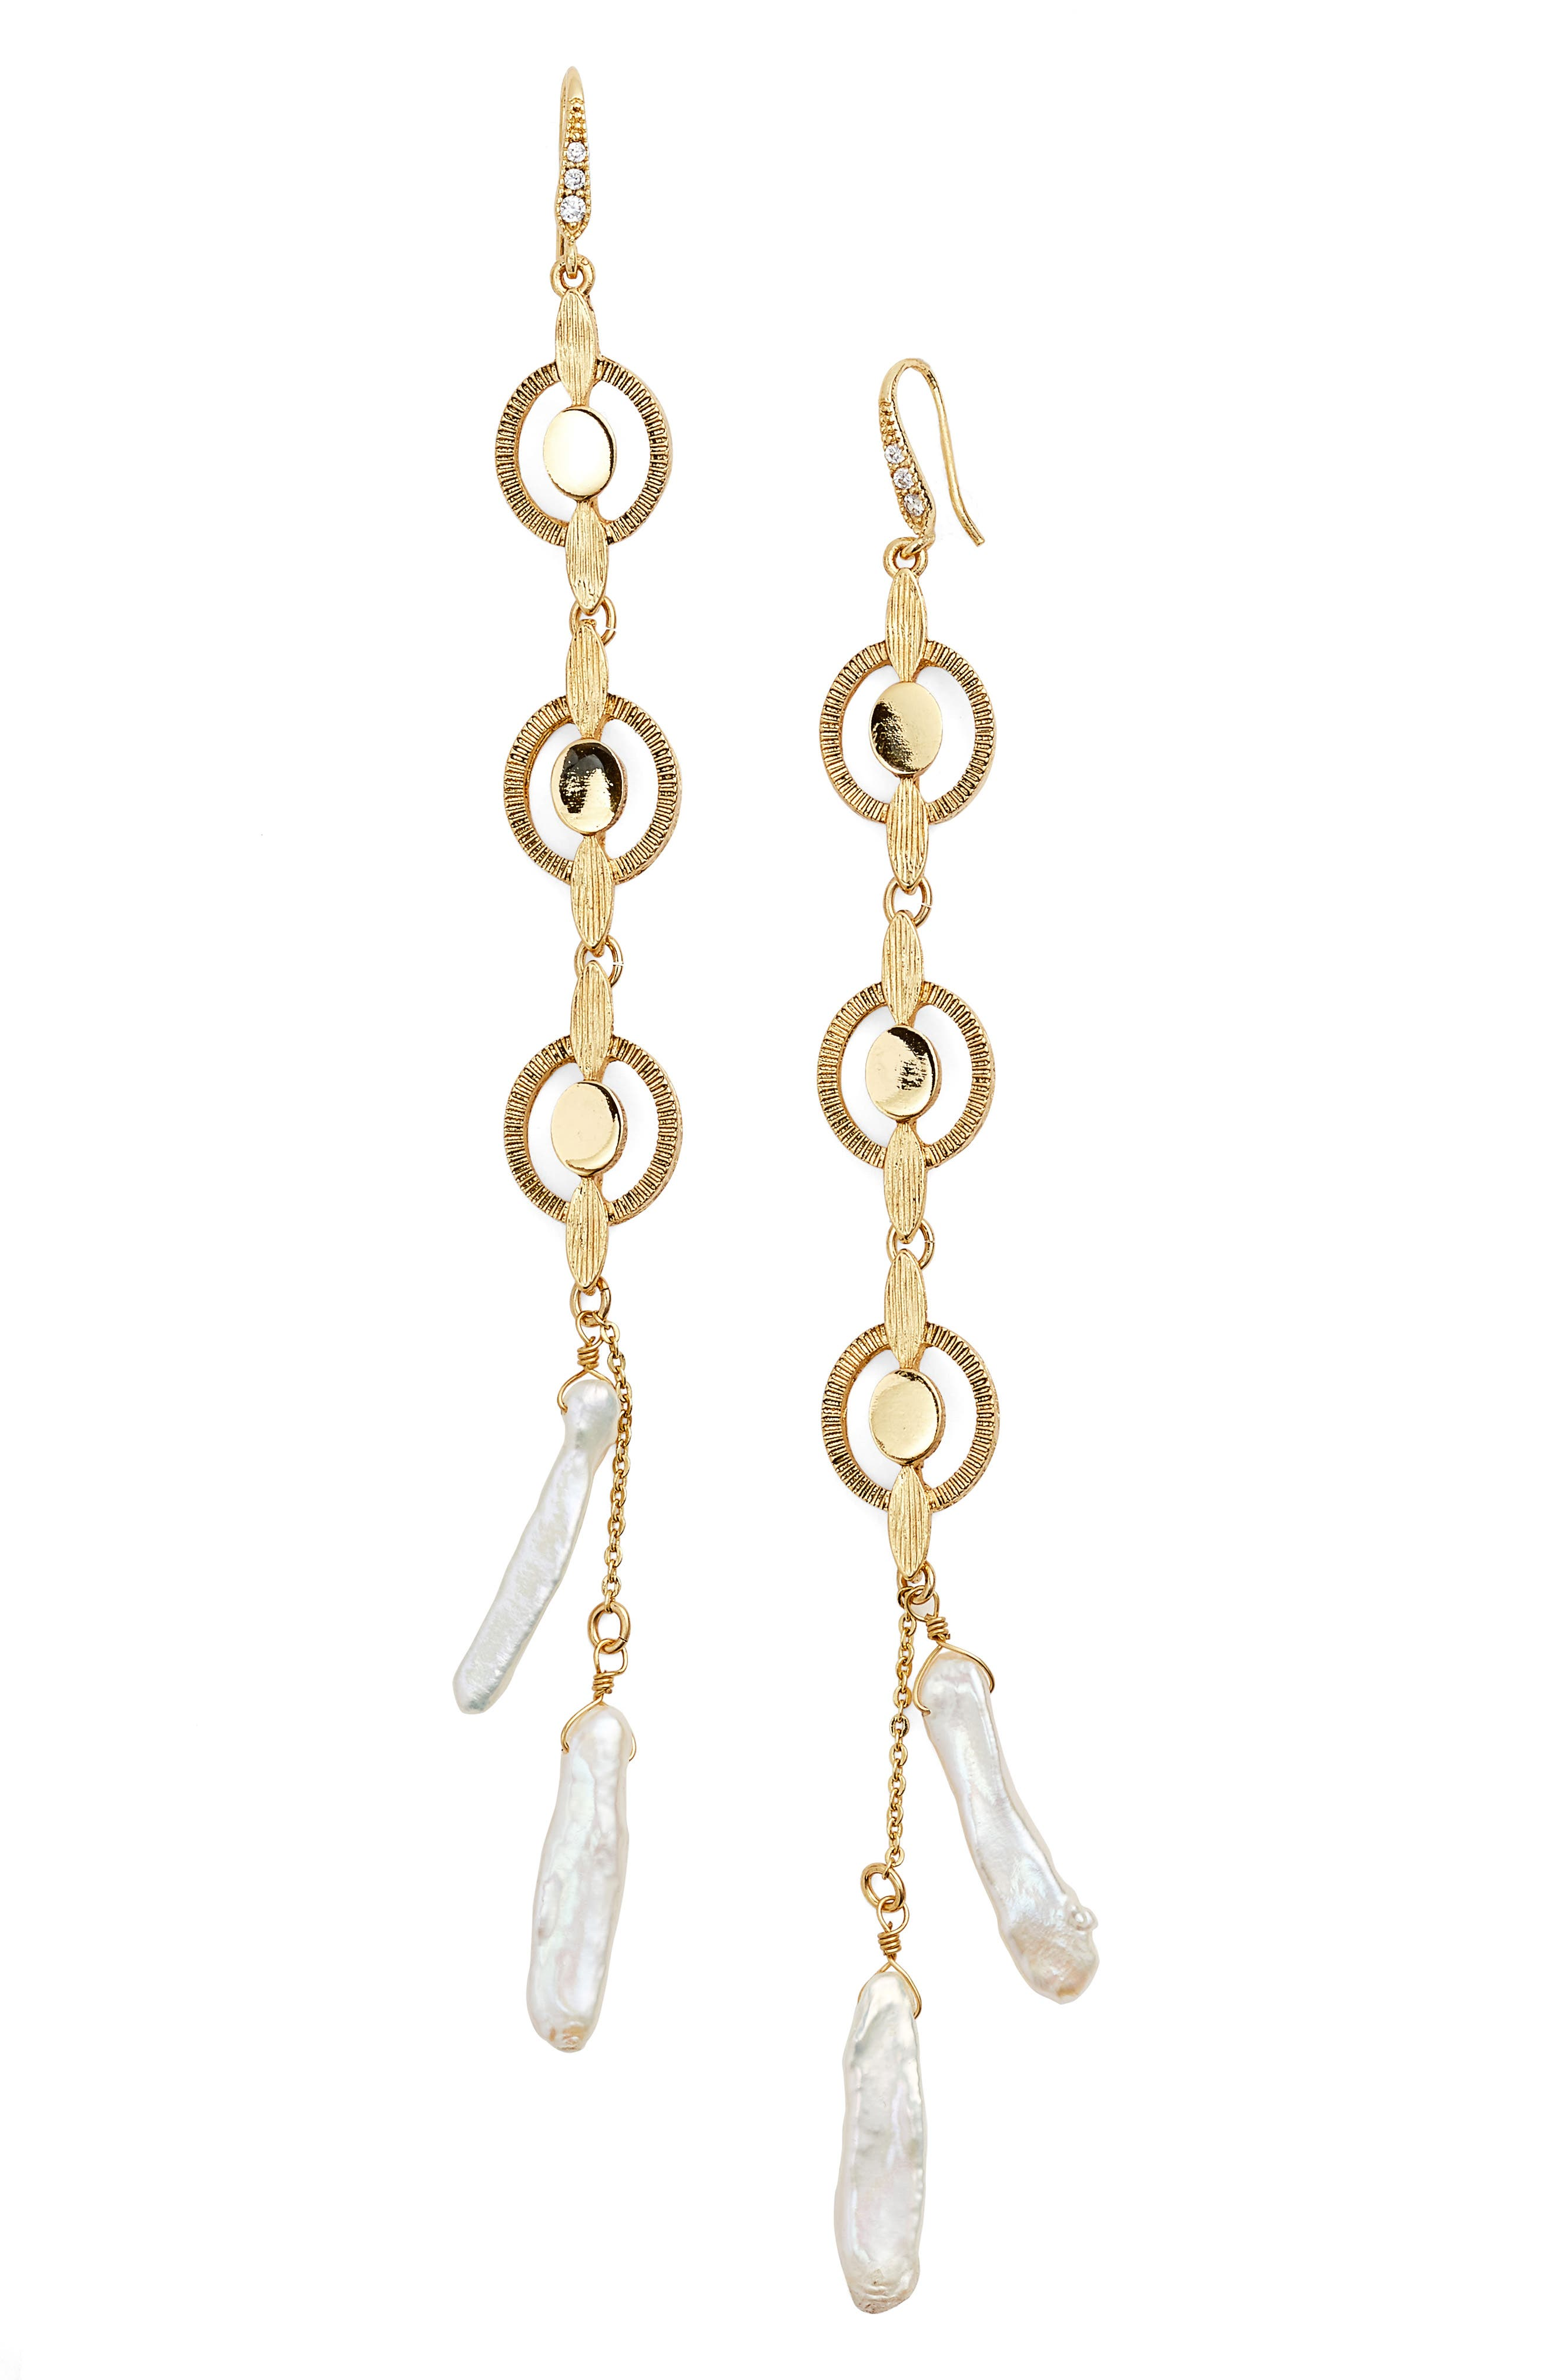 BADGLEY MISCHKA COLLECTION,                             Badgley Mischka Katie Freshwater Pearl Linear Drop Earrings,                             Main thumbnail 1, color,                             GOLD